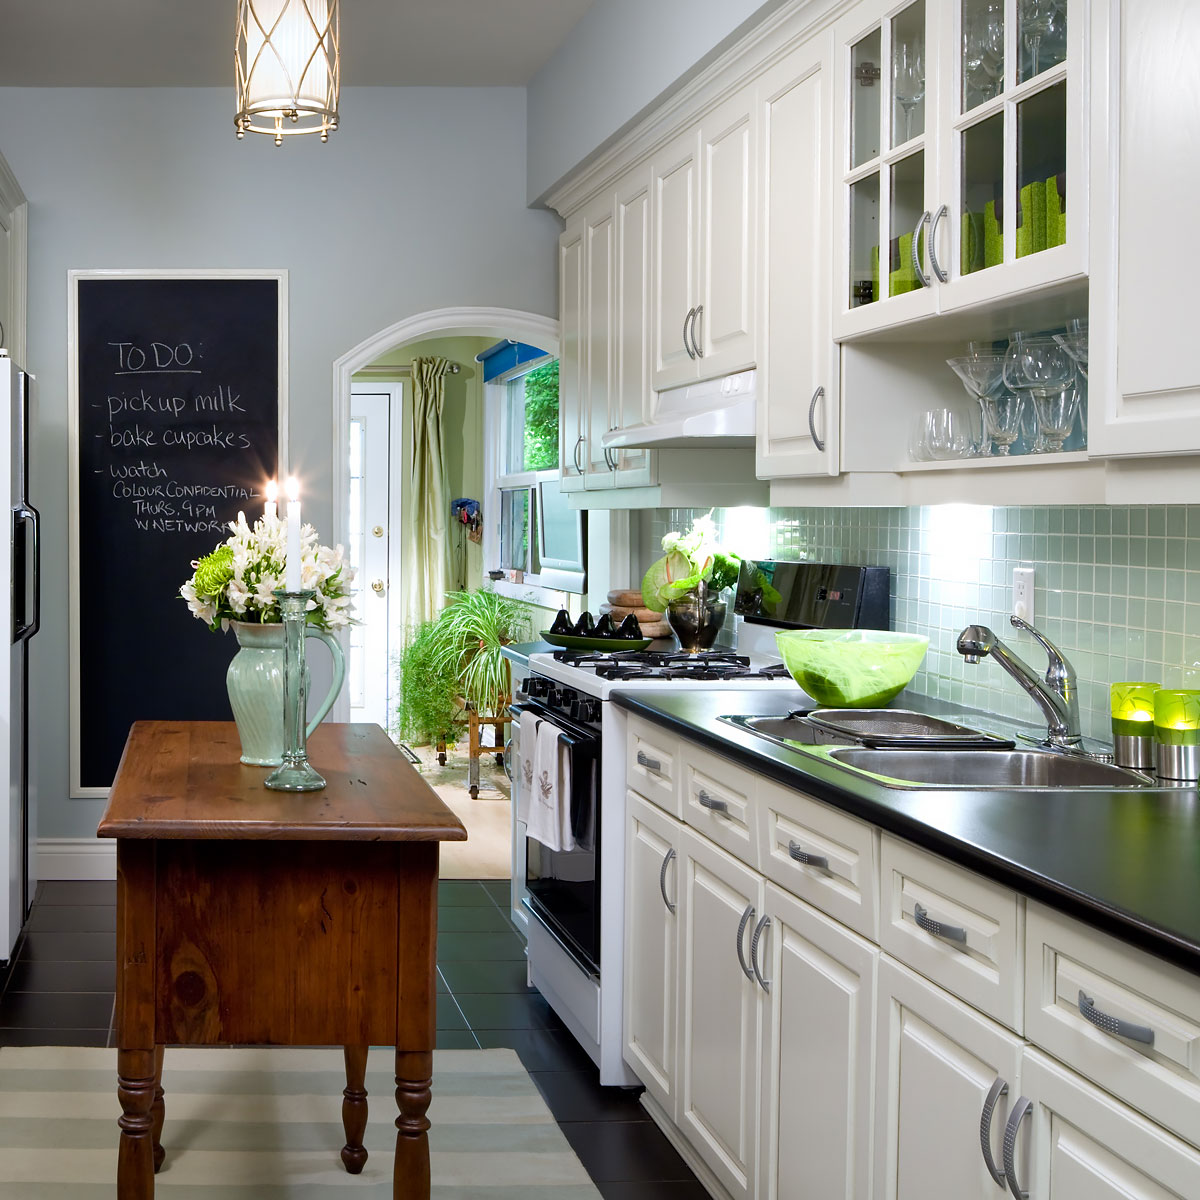 Great Ideas To Update Oak Kitchen Cabinets: How To Update Old Wood Kitchen Cabinets